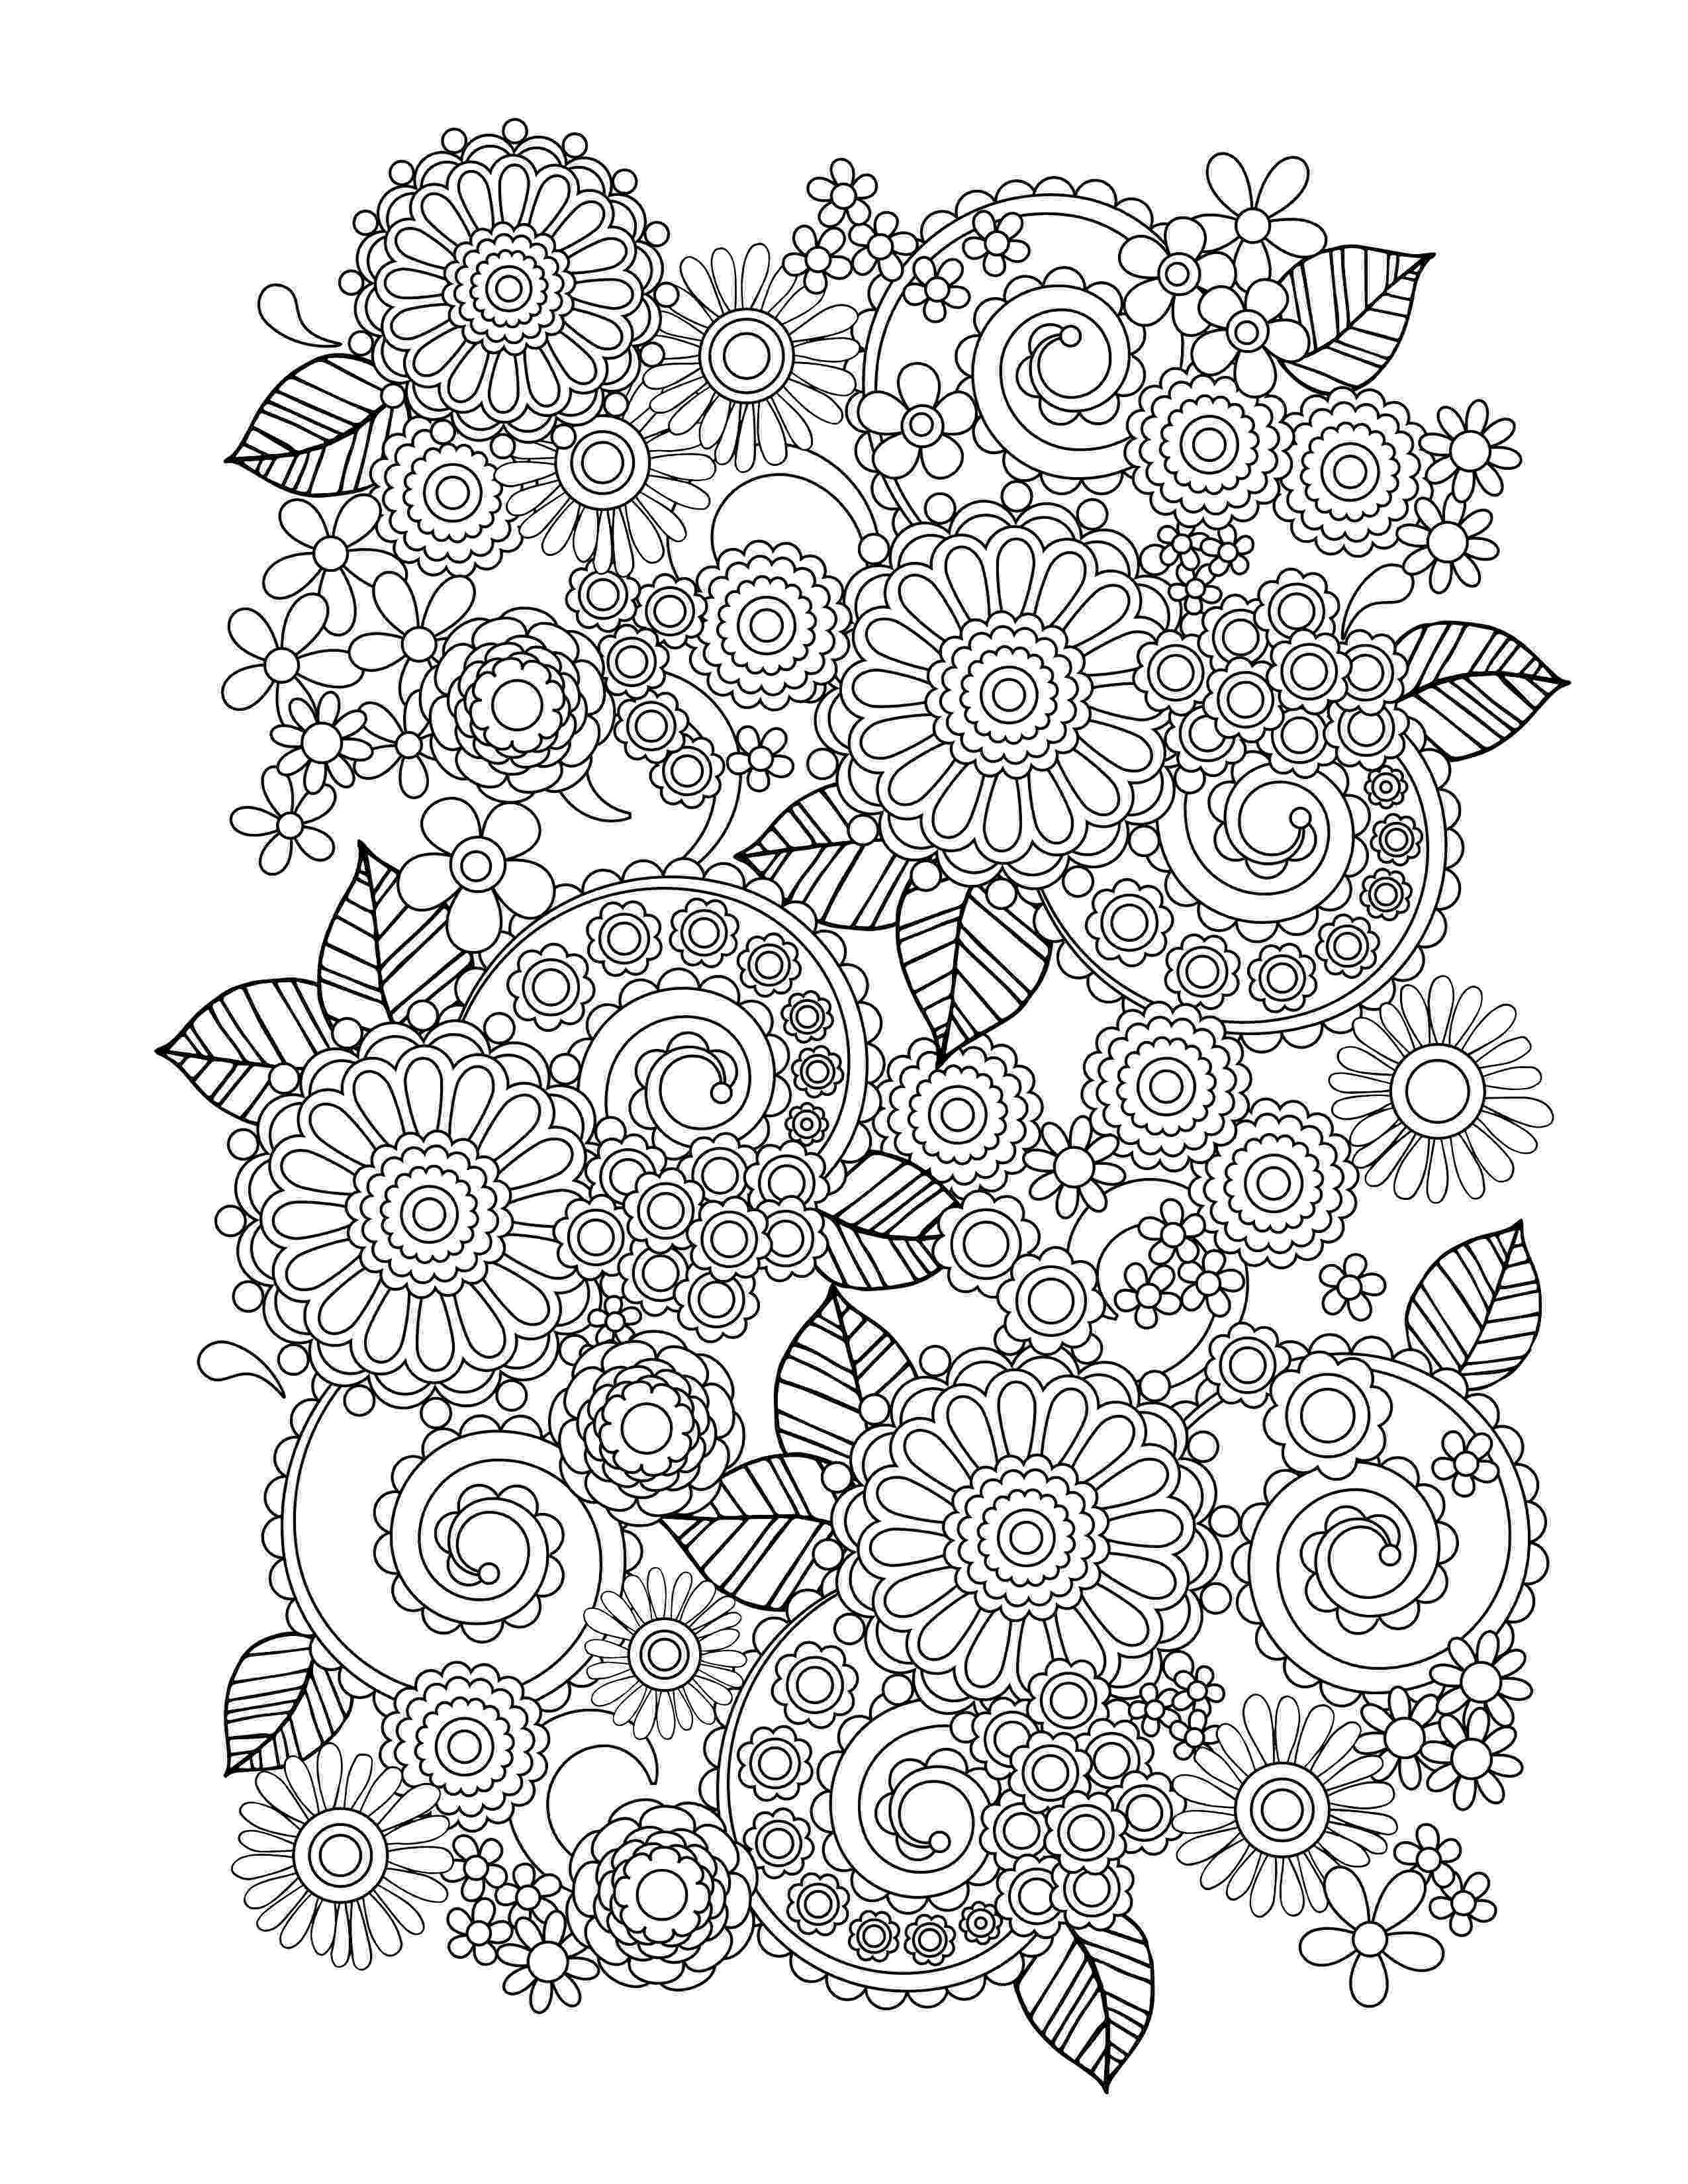 artistic coloring pages art therapy coloring pages to download and print for free artistic coloring pages 1 1